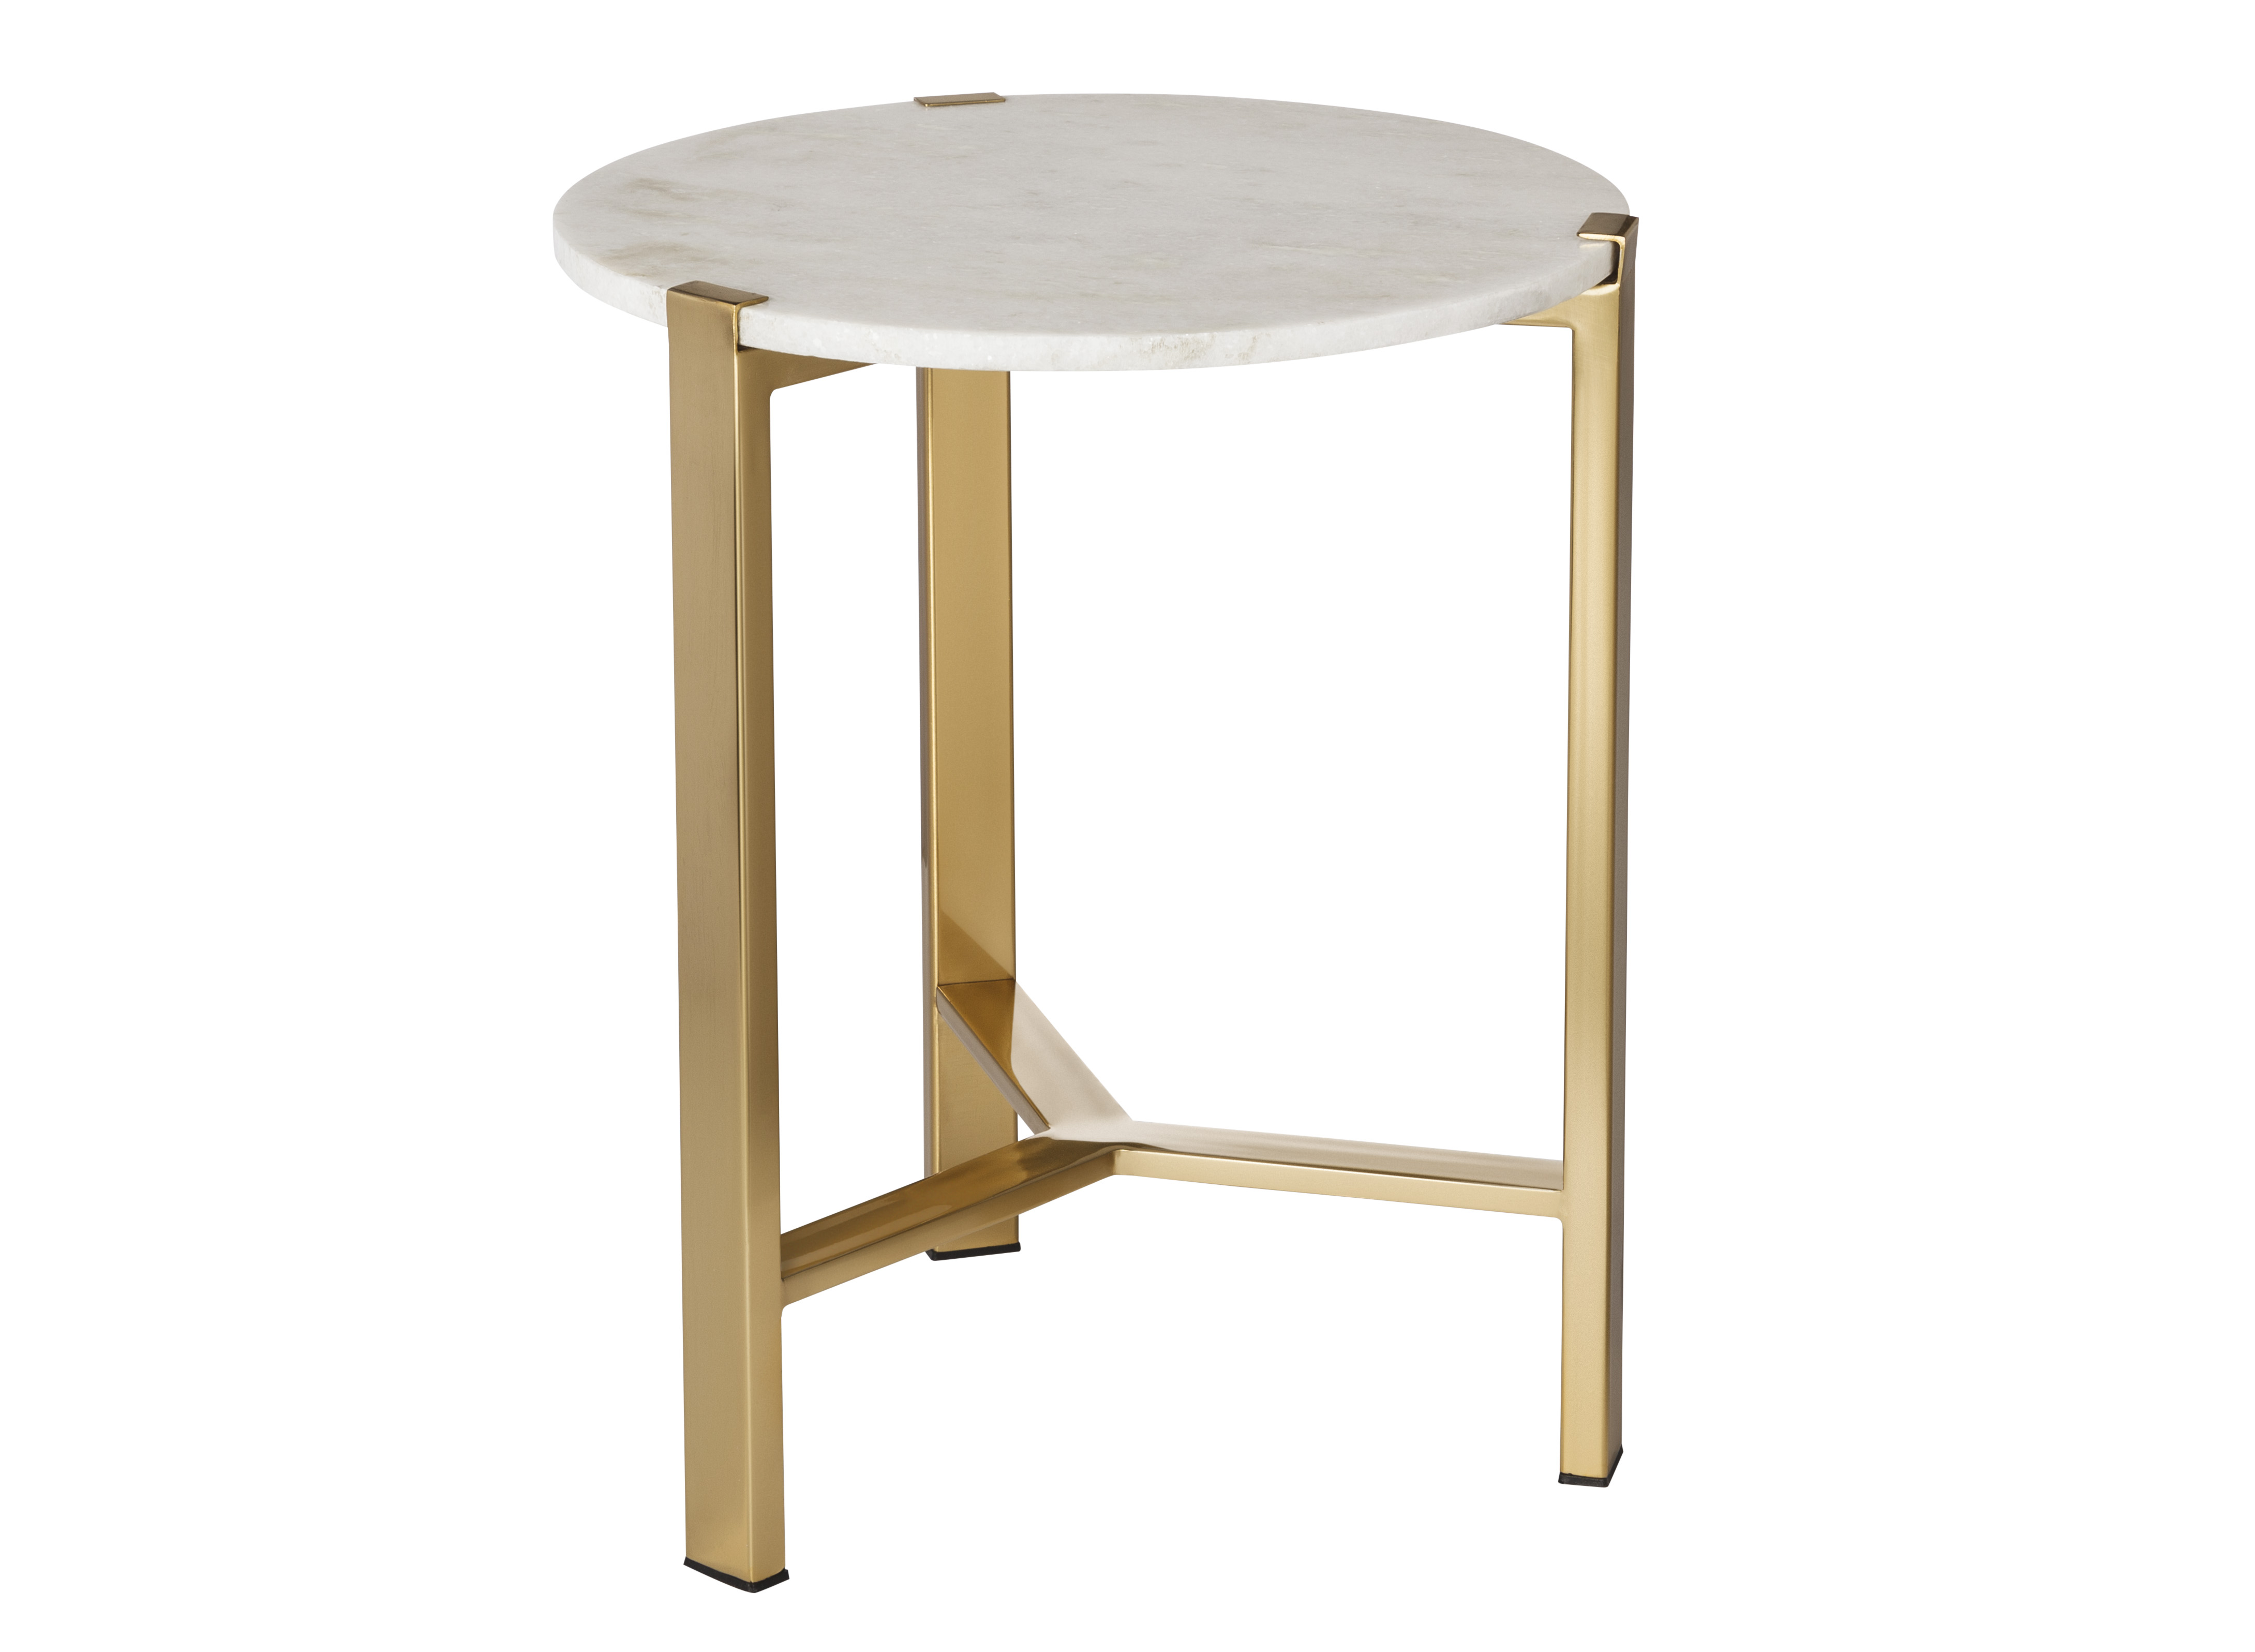 nate berkus target fall holiday look marble accent table sheesham wood furniture round glass and chrome side garden storage units nightstands clearance restoration hardware